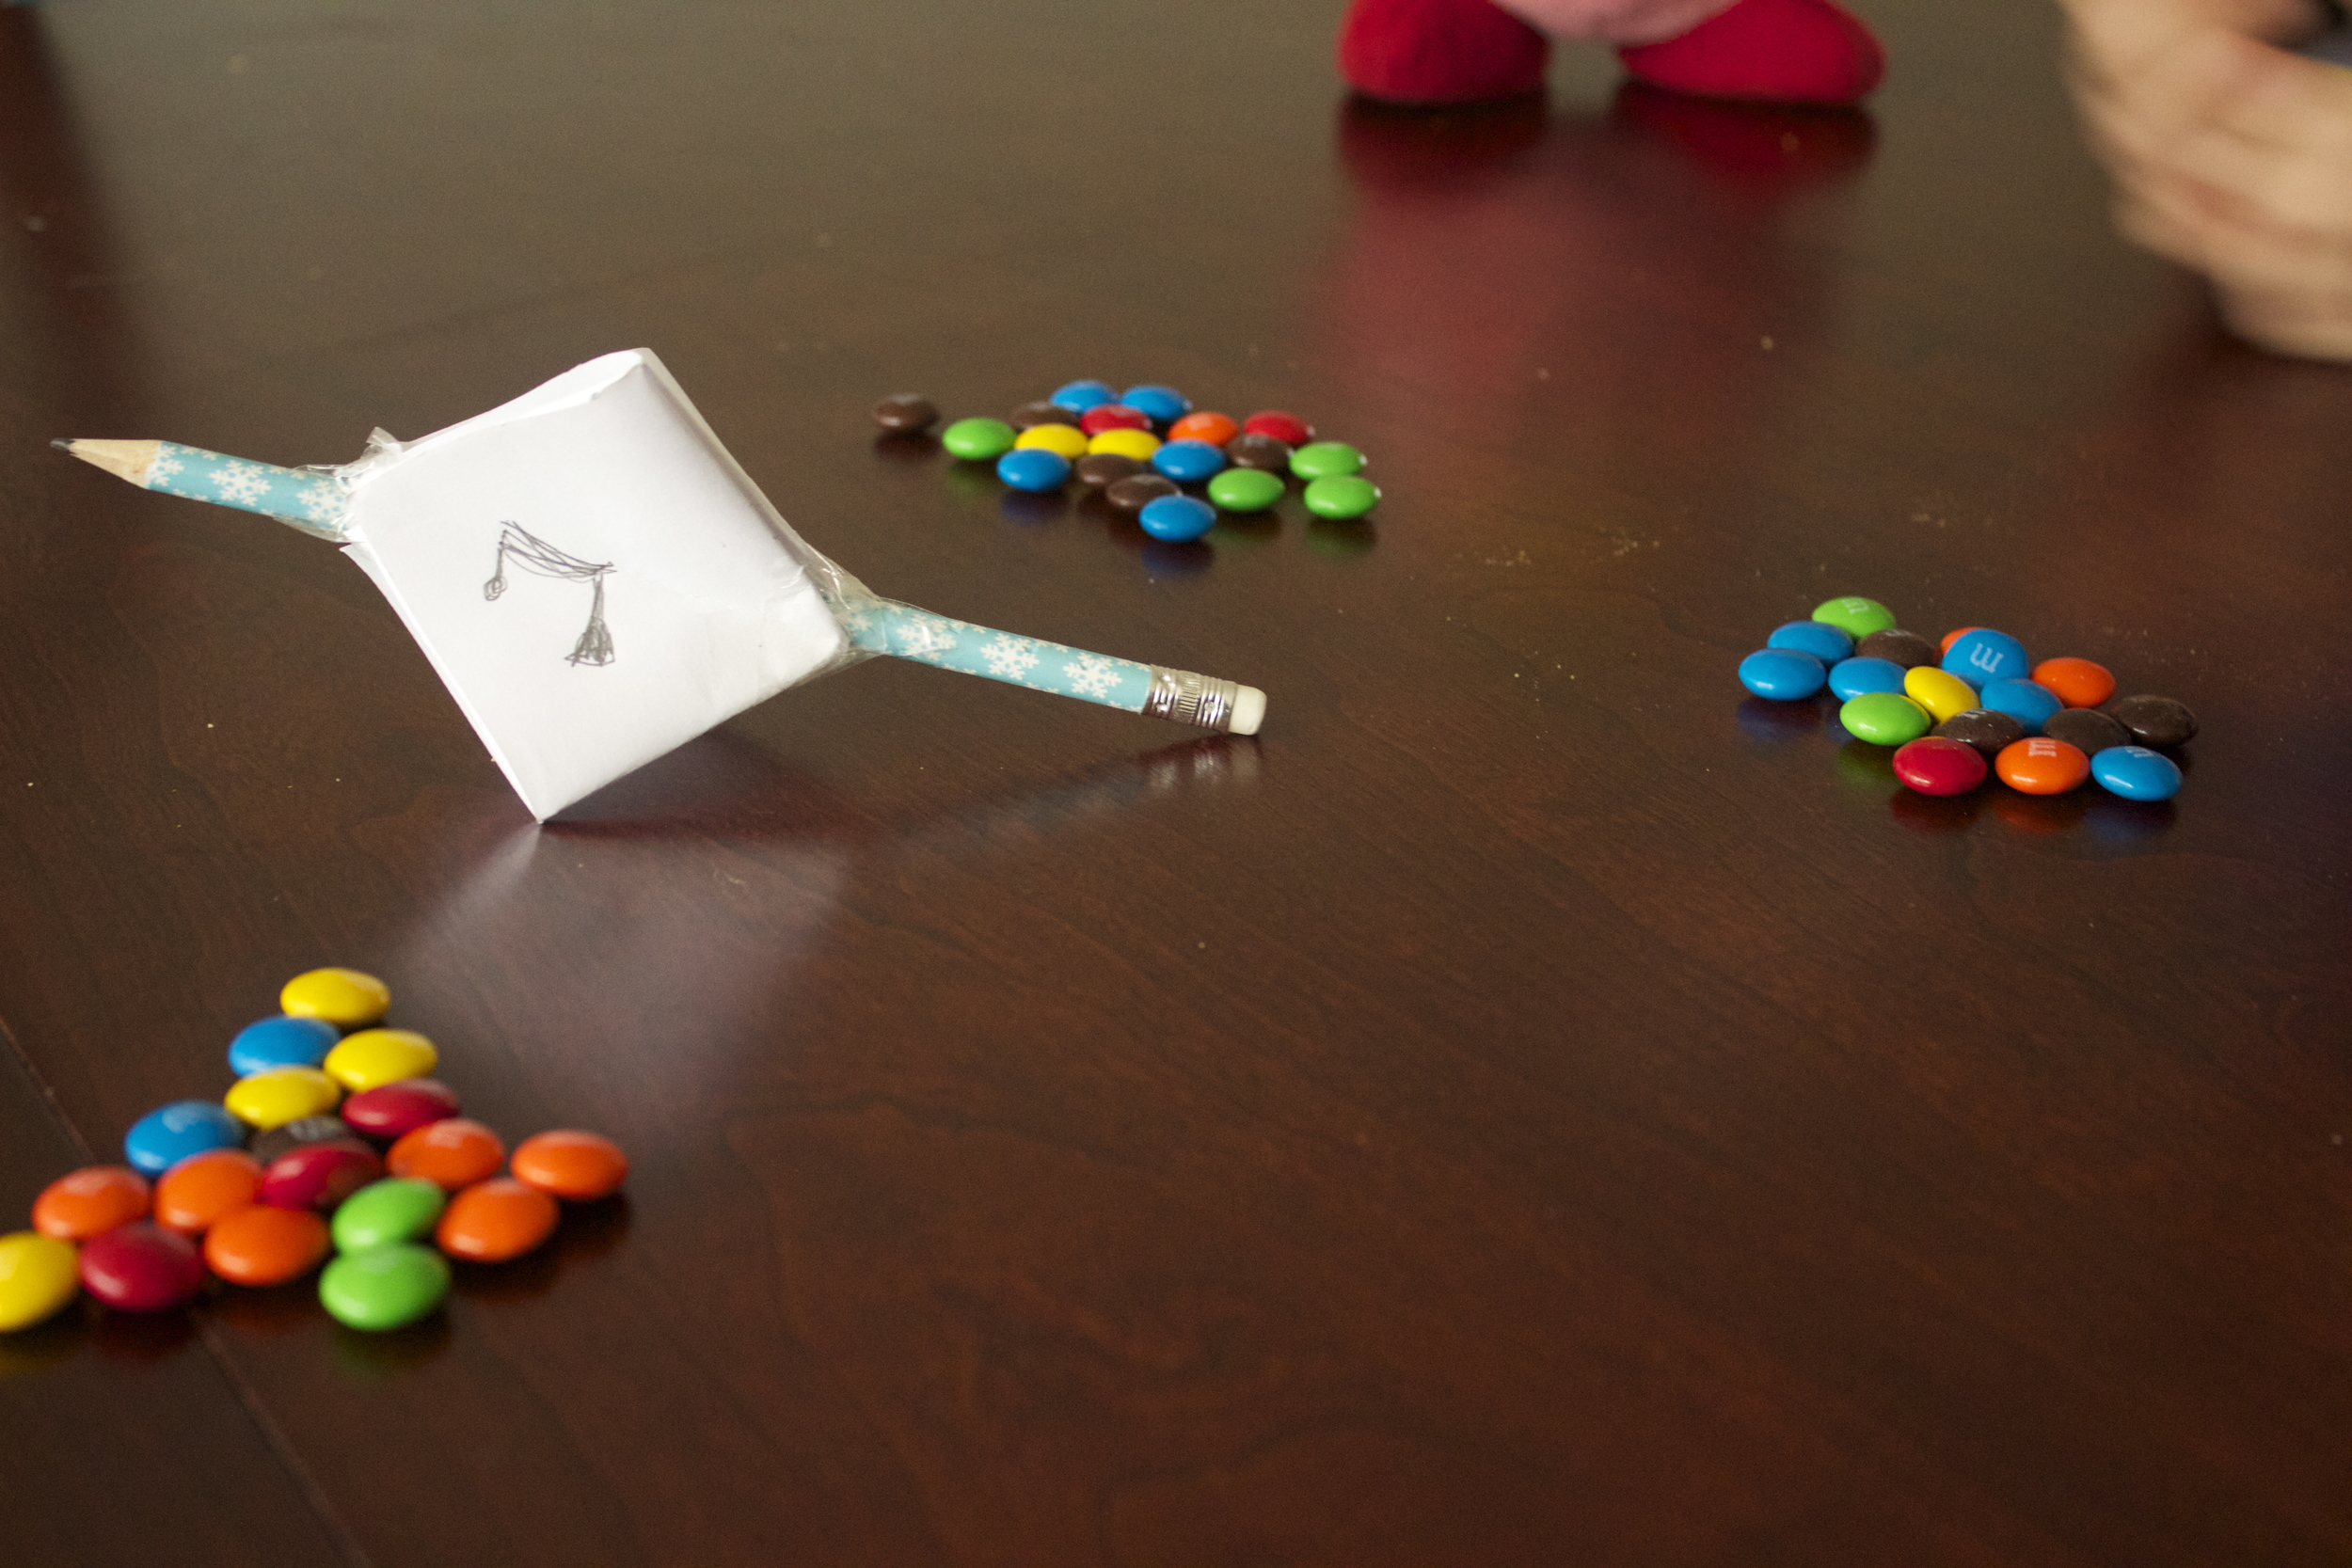 Grab the thing you will play with- we did the previously mentioned m&ms and play!